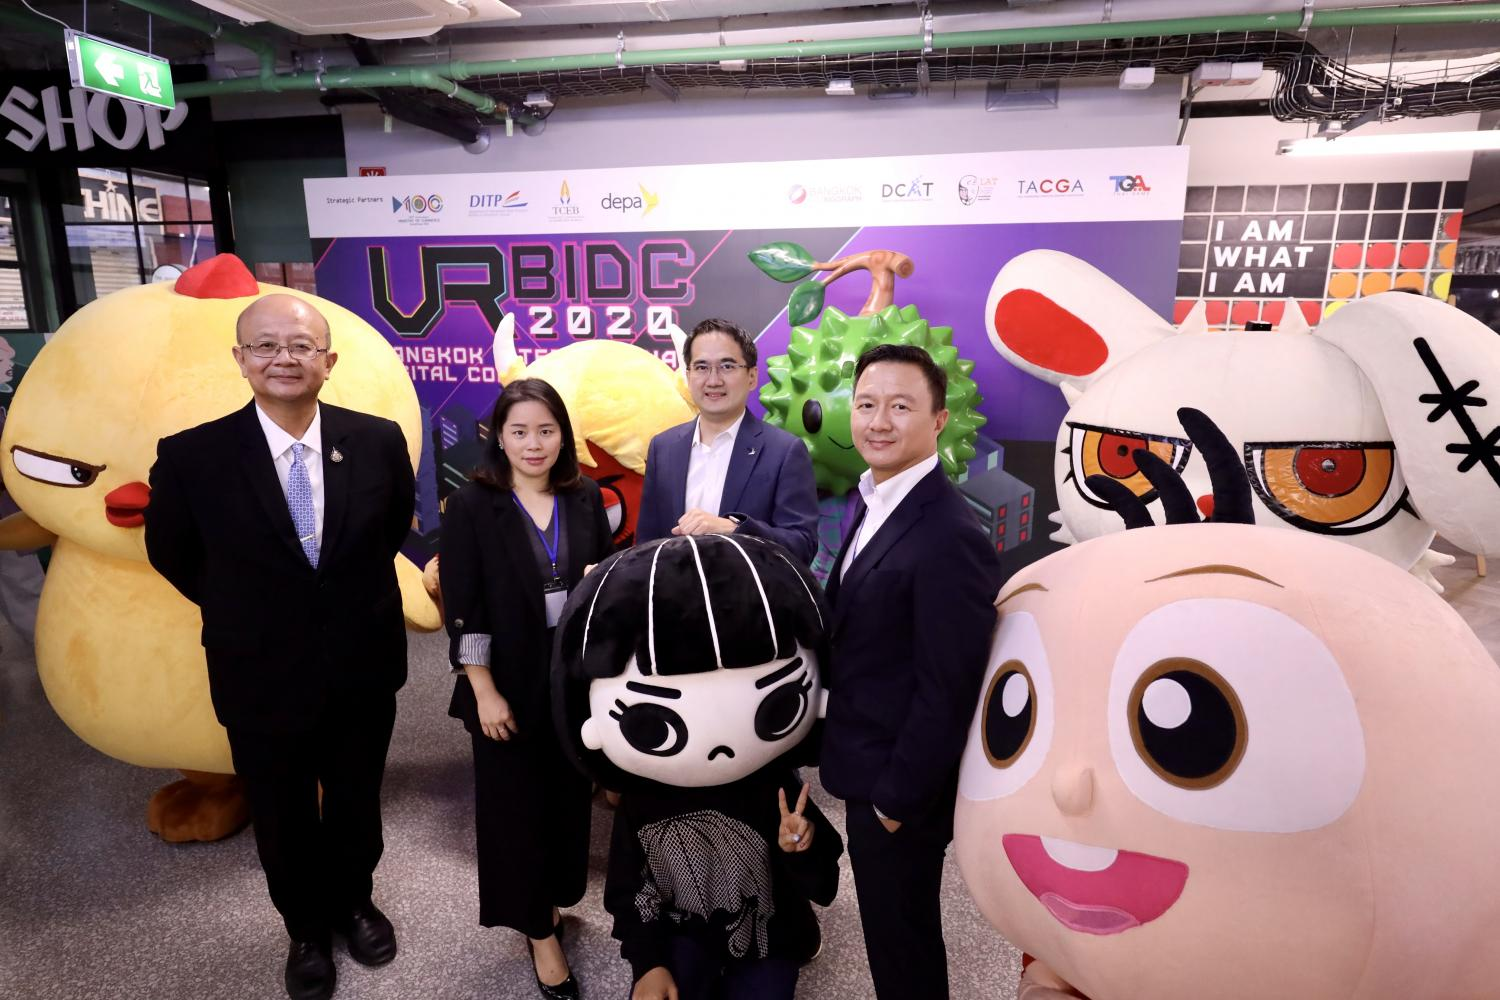 From left  Somdet Susomboon, director-general of the International Trade Promotion Department; Harisuda Boonyawat, director of the Mega Events and World Festival Department; Chatchai Khunpitilak, deputy director of the Digital Economy Promotion Agency; and Krit Na Lamliang, president of the Digital Content Association of Thailand, at the launch of the Bangkok International Digital Content Festival.